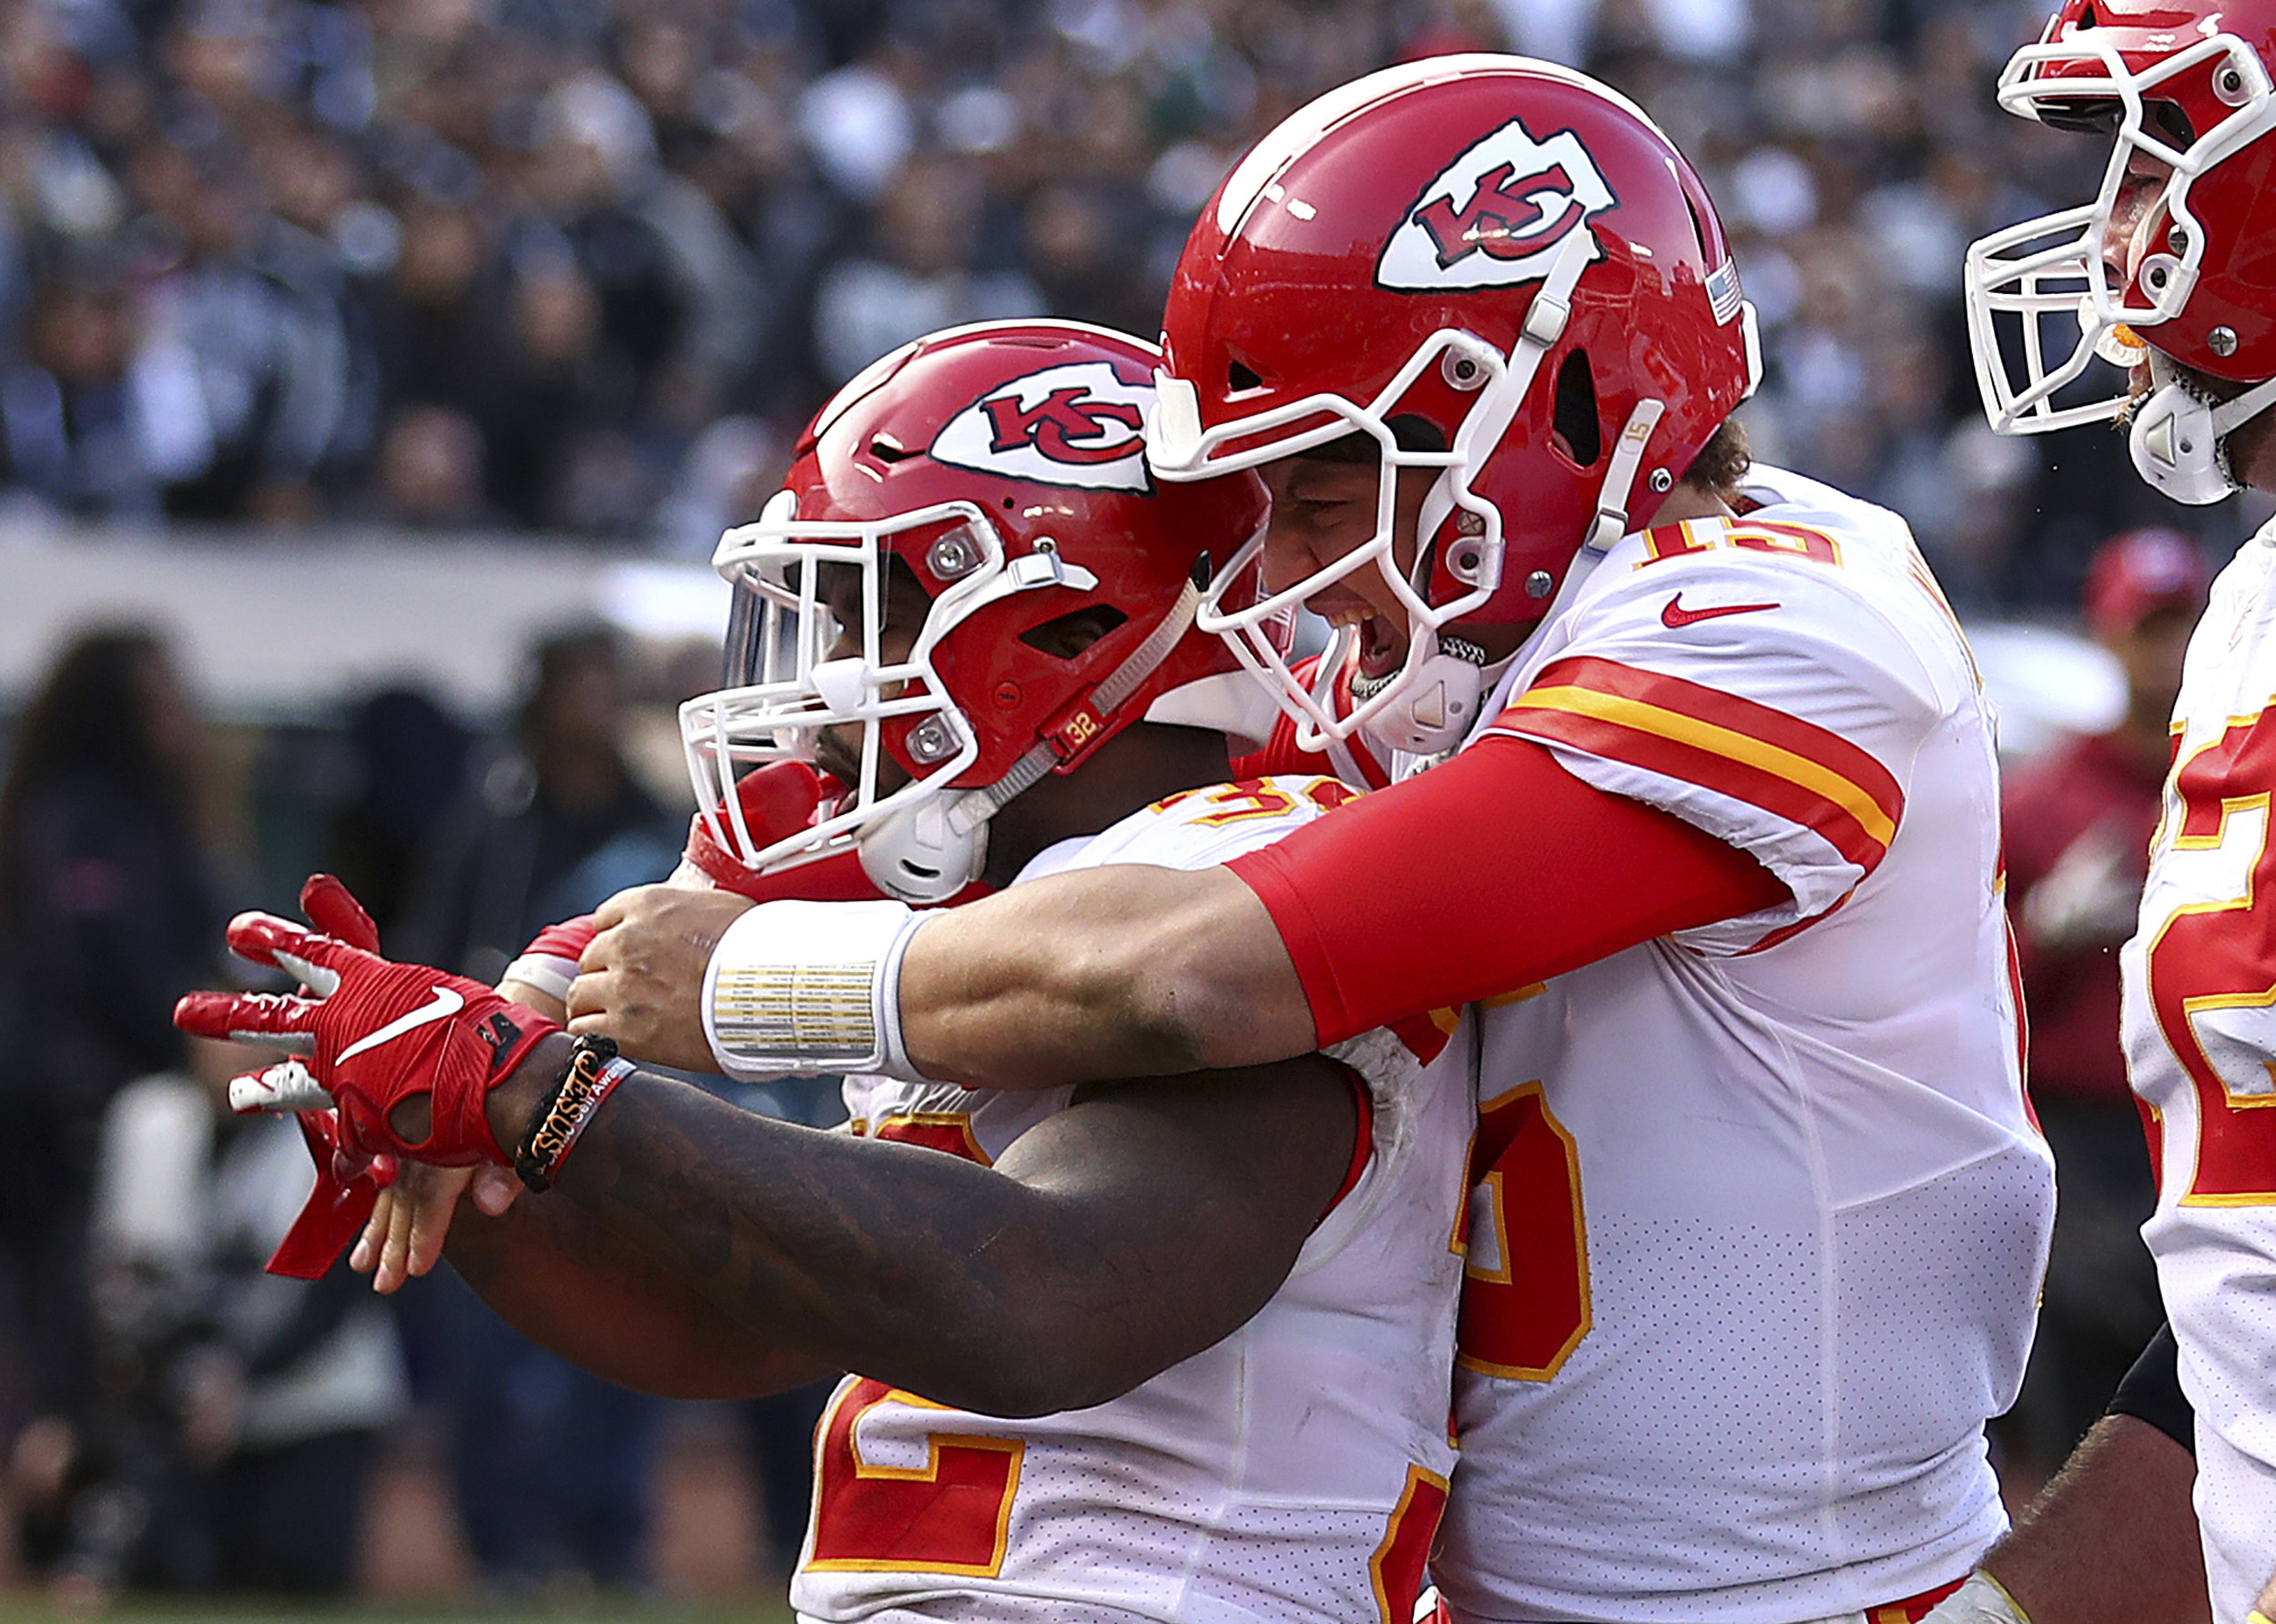 Kansas City Chiefs running back Spencer Ware, left, is congratulated by quarterback Patrick Mahomes after scoring against the Oakland Raiders. (AP Photo/Ben Margot)